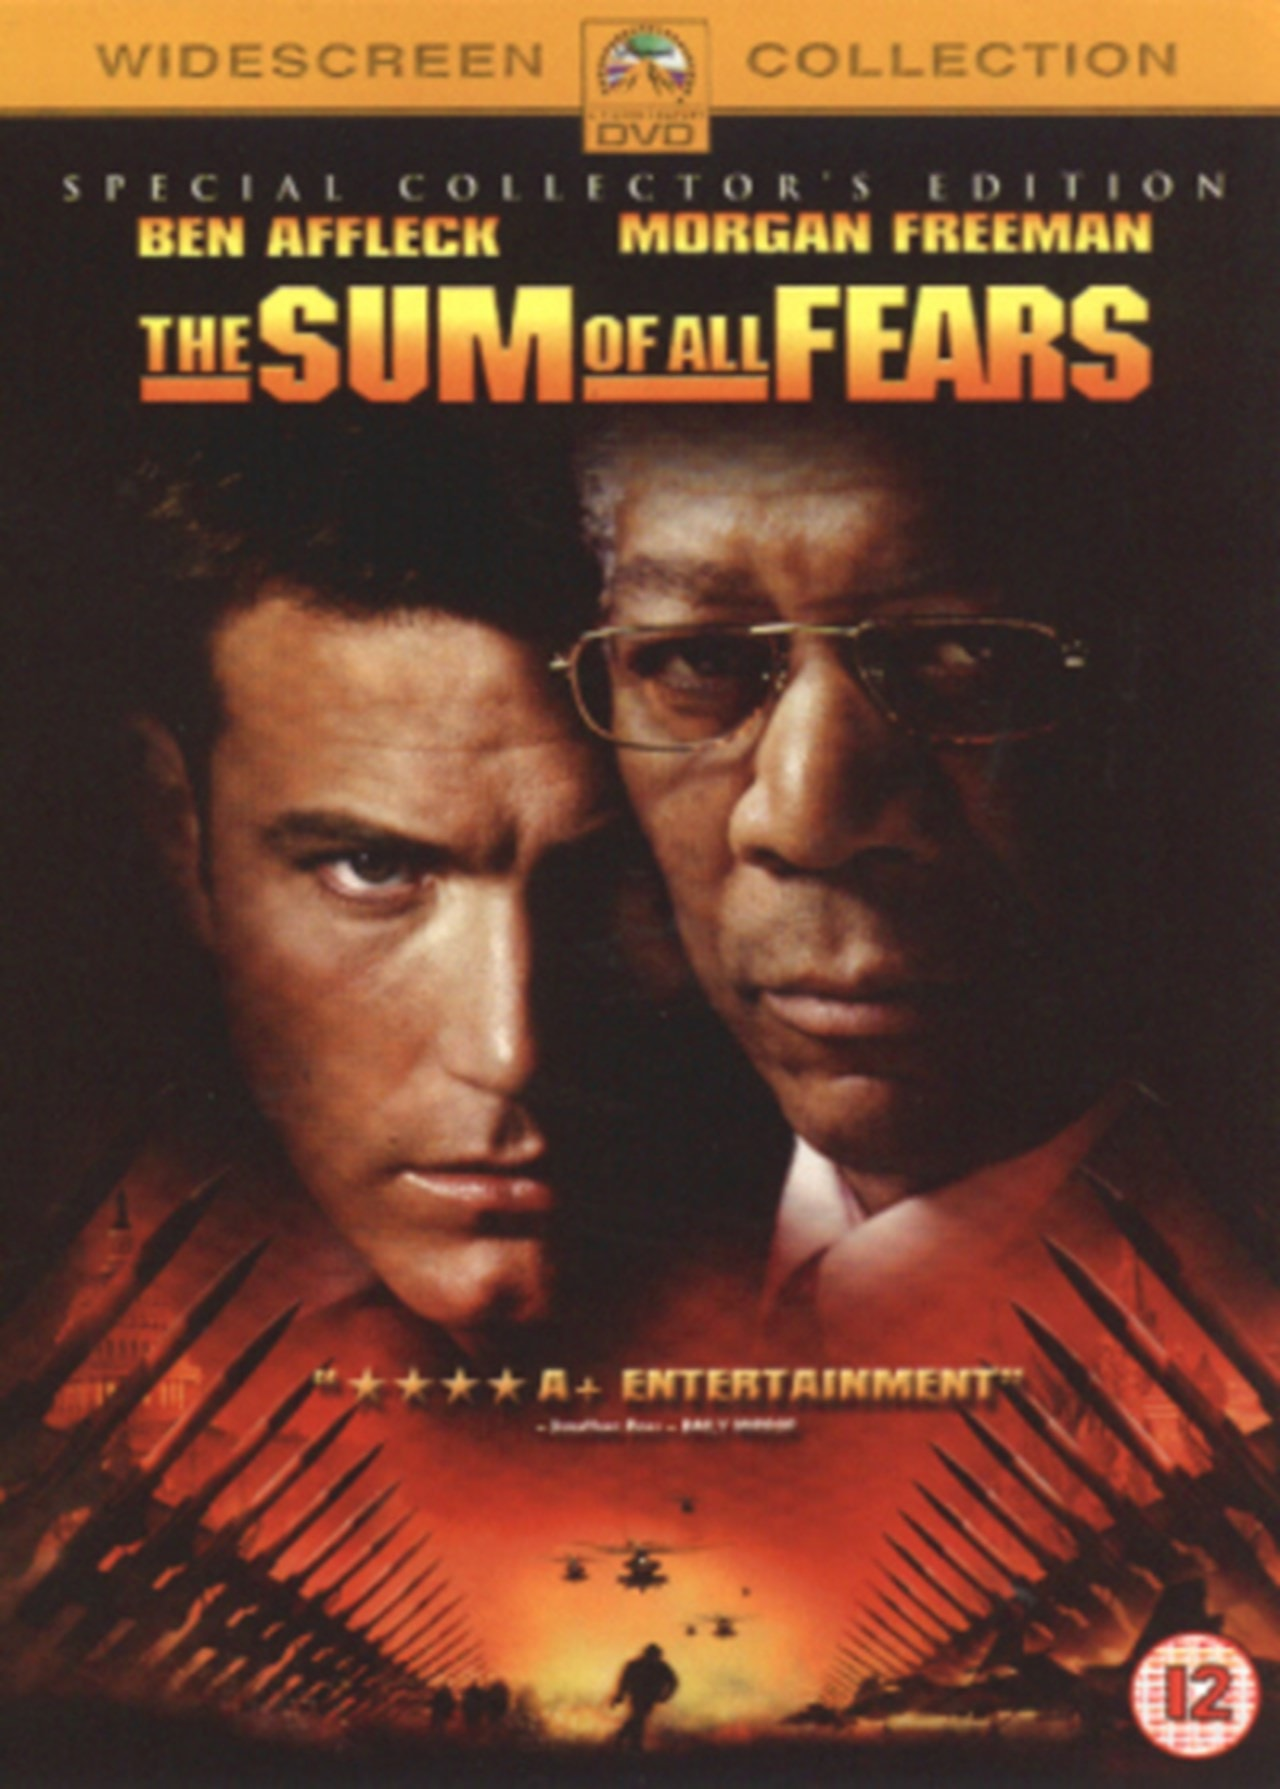 The Sum of All Fears - 1